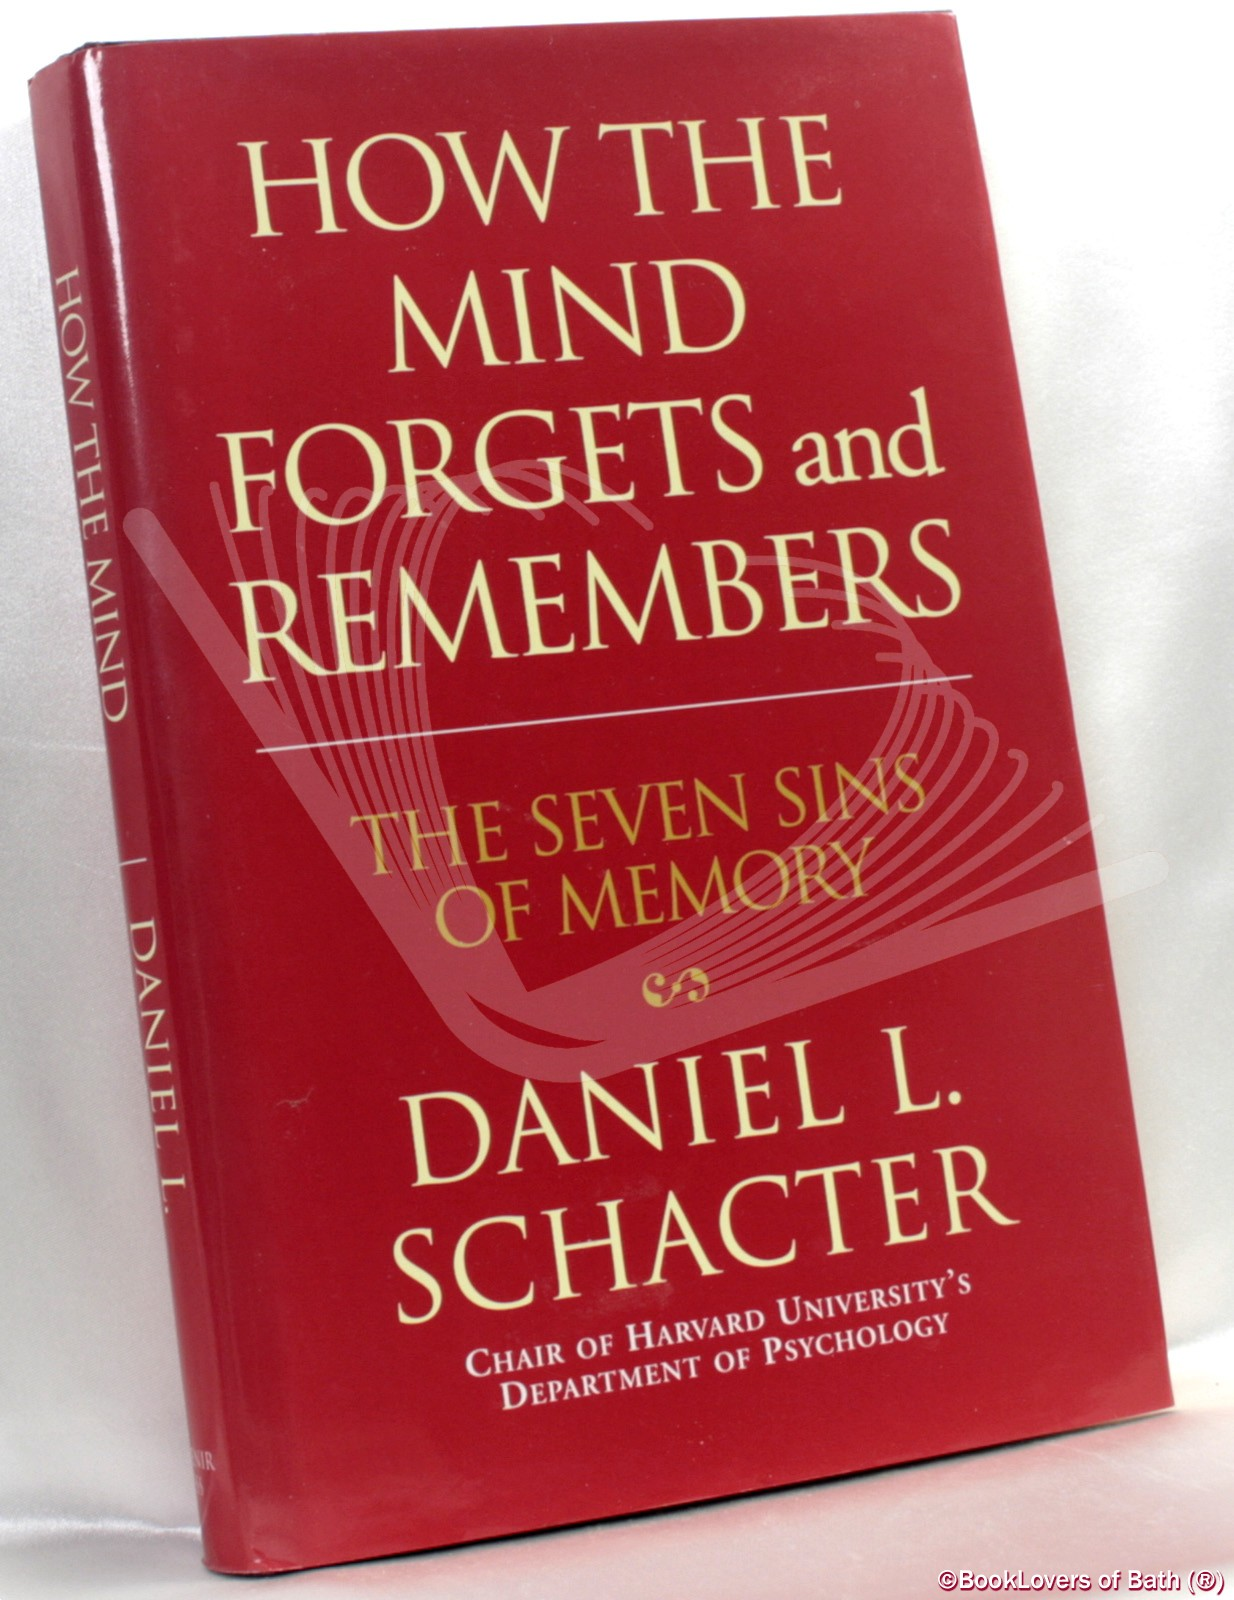 How the Mind Forgets and Remembers: The Seven Sins of Memory - Daniel L. Schacter